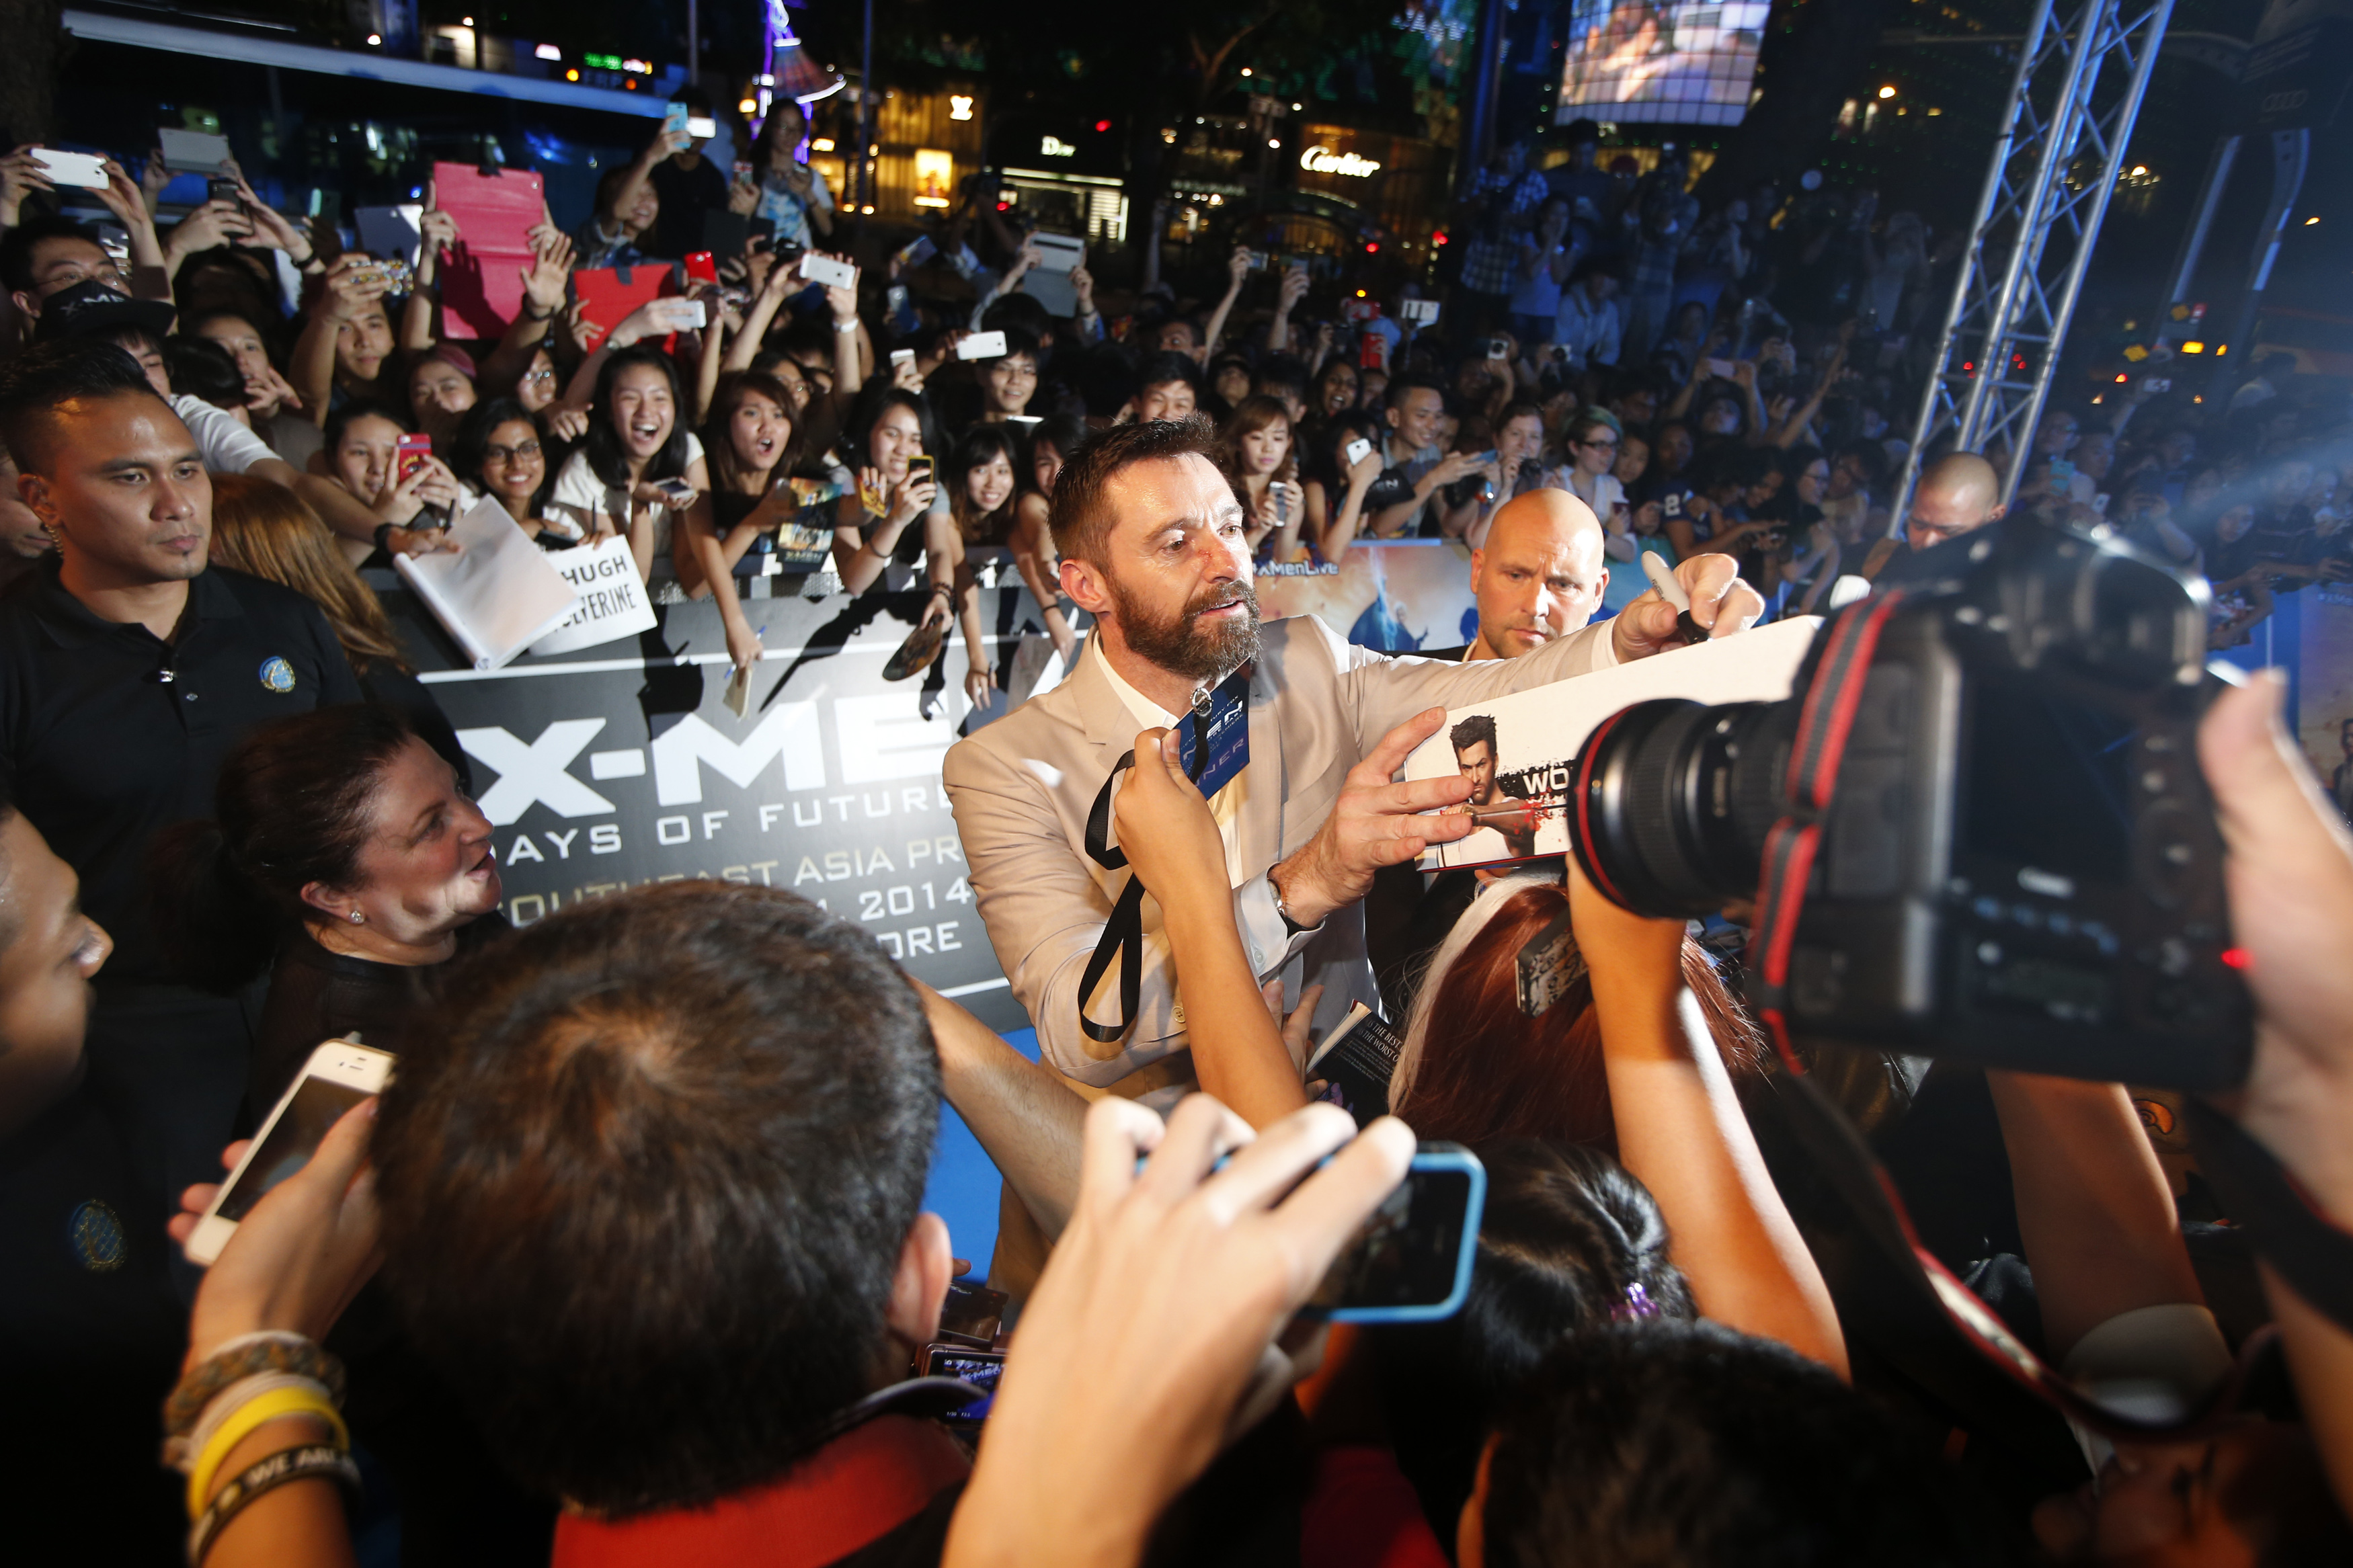 Cast member Hugh Jackman signs autographs for fans at the Southeast Asia premiere of X-Men: Days of Future Past in Singapore on May 14, 2014